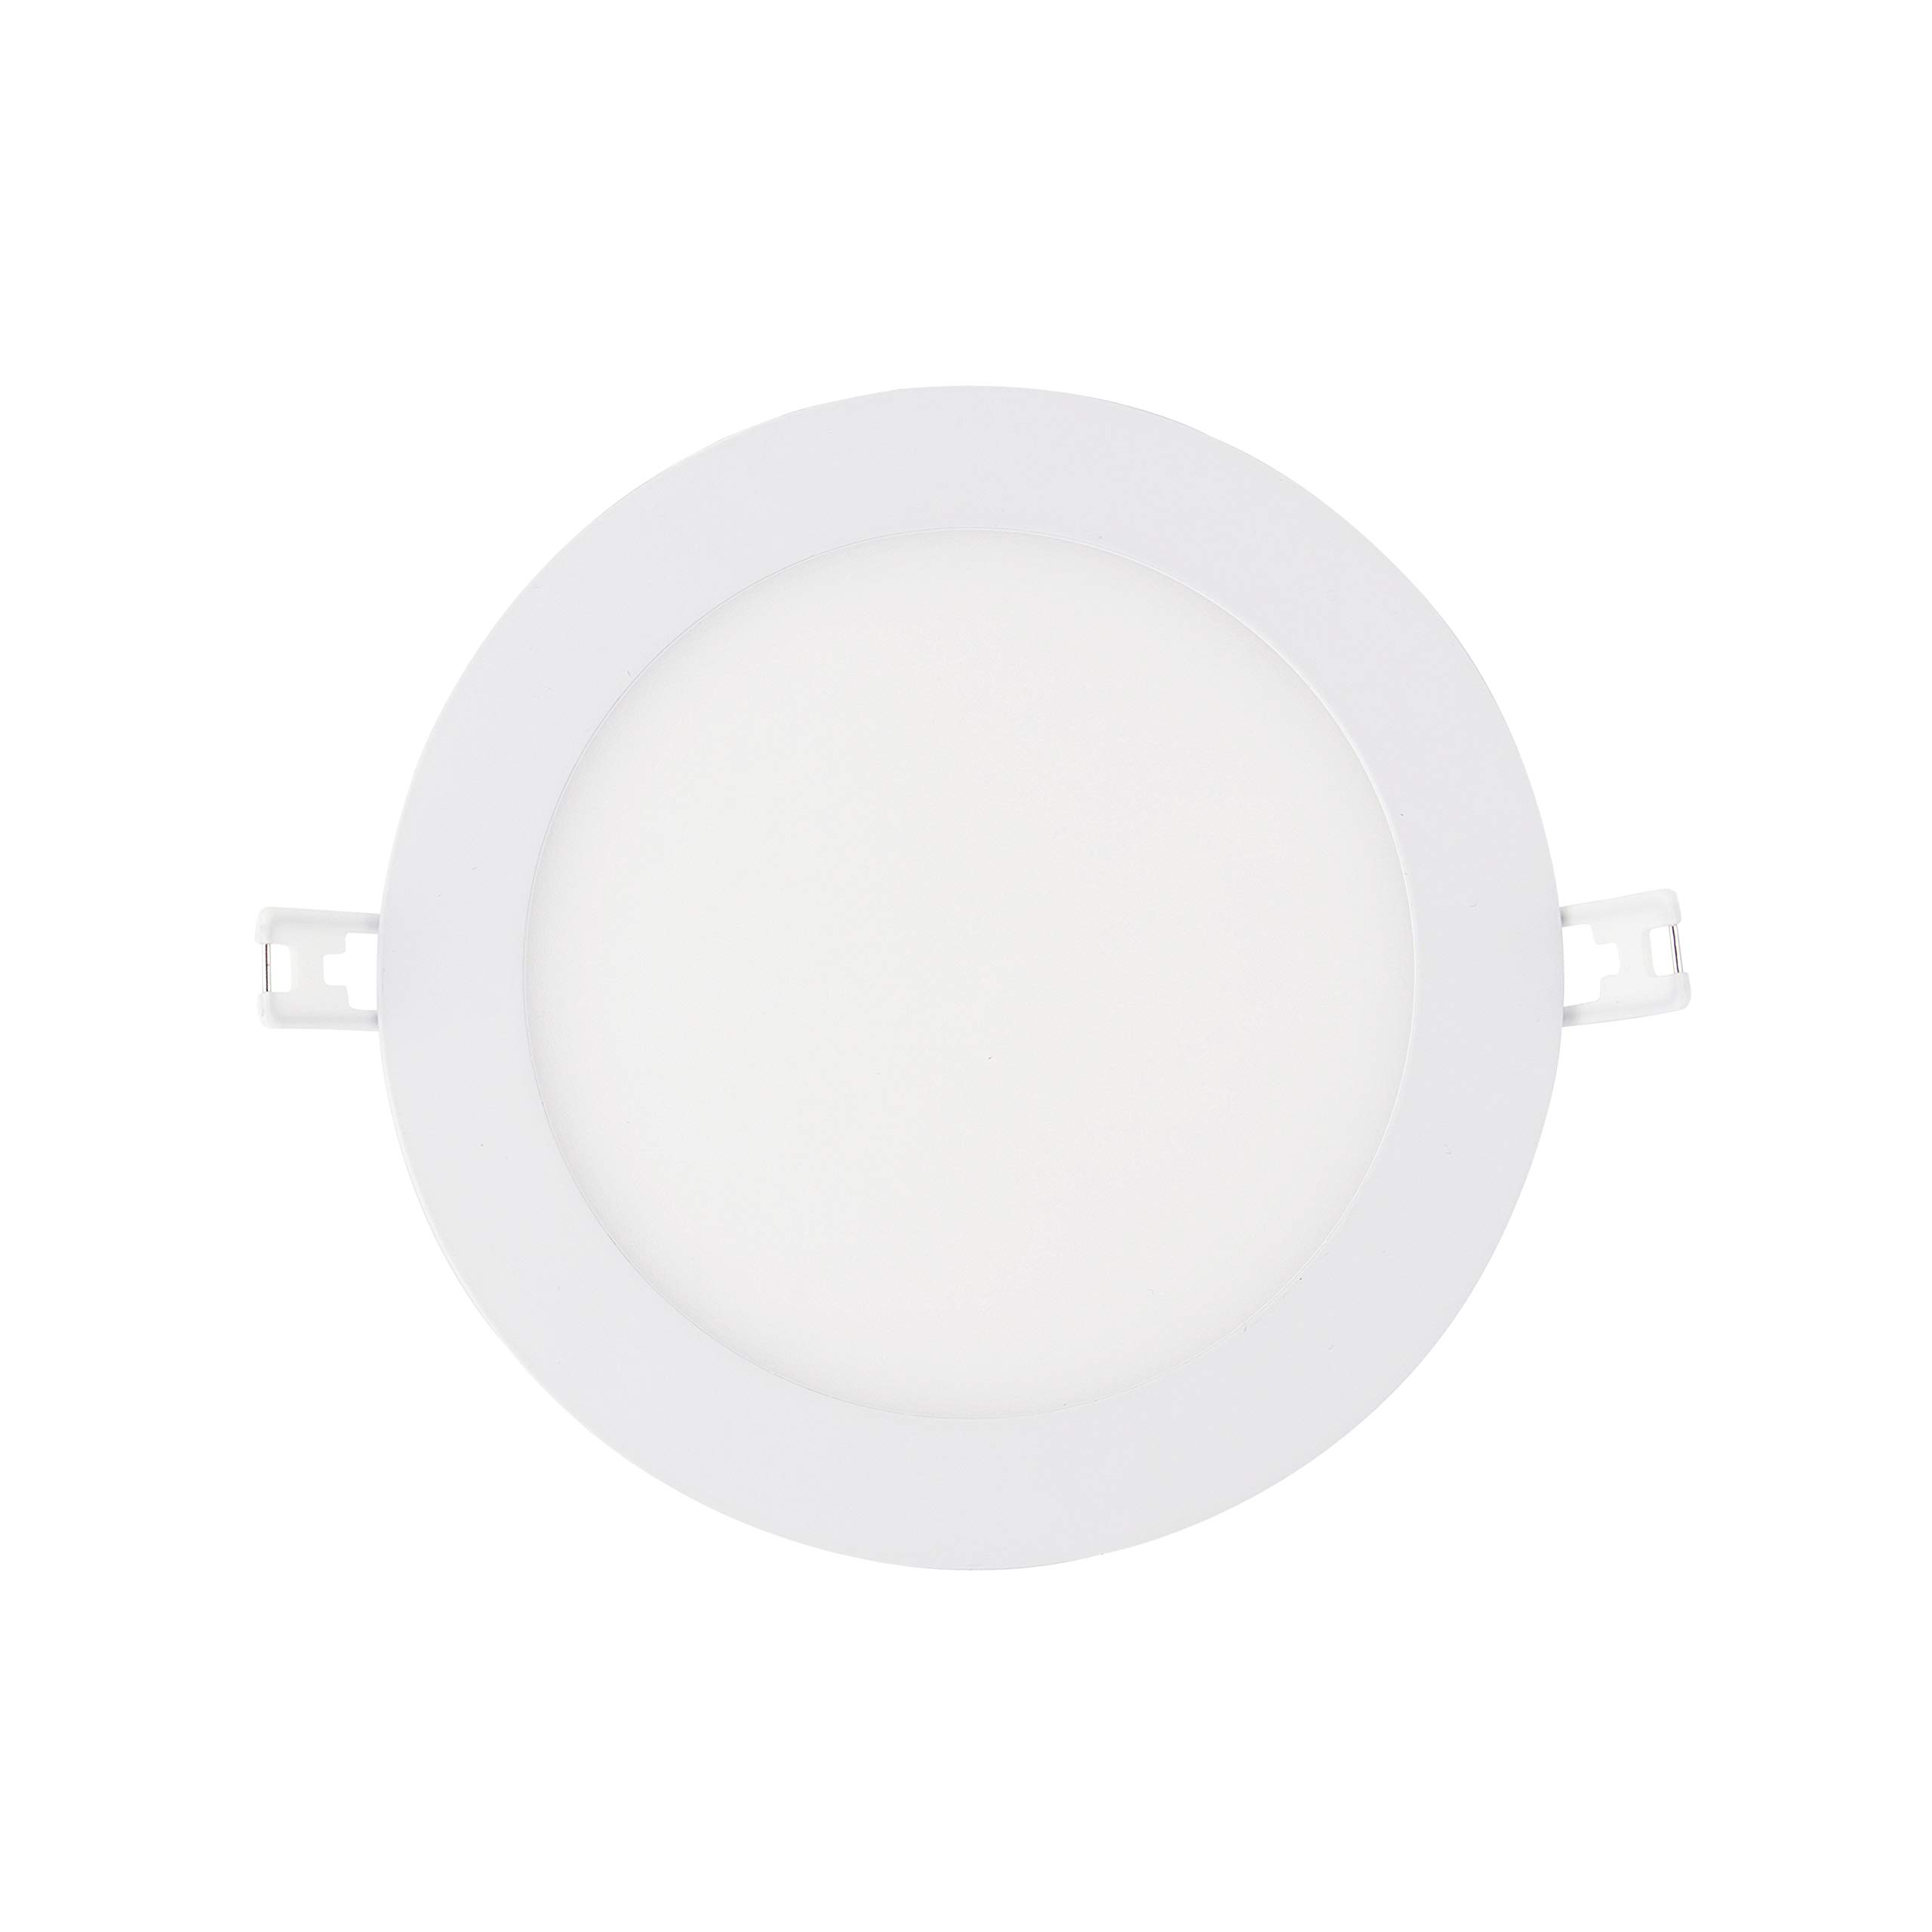 LED Recessed Light Fixture 6 inch Round with Driver, 3000K Soft White, 15W, 900 Lumens, 120V, Low Profile, Dimmable, Energy Star and IC Rated, White Trim, 1 Pack